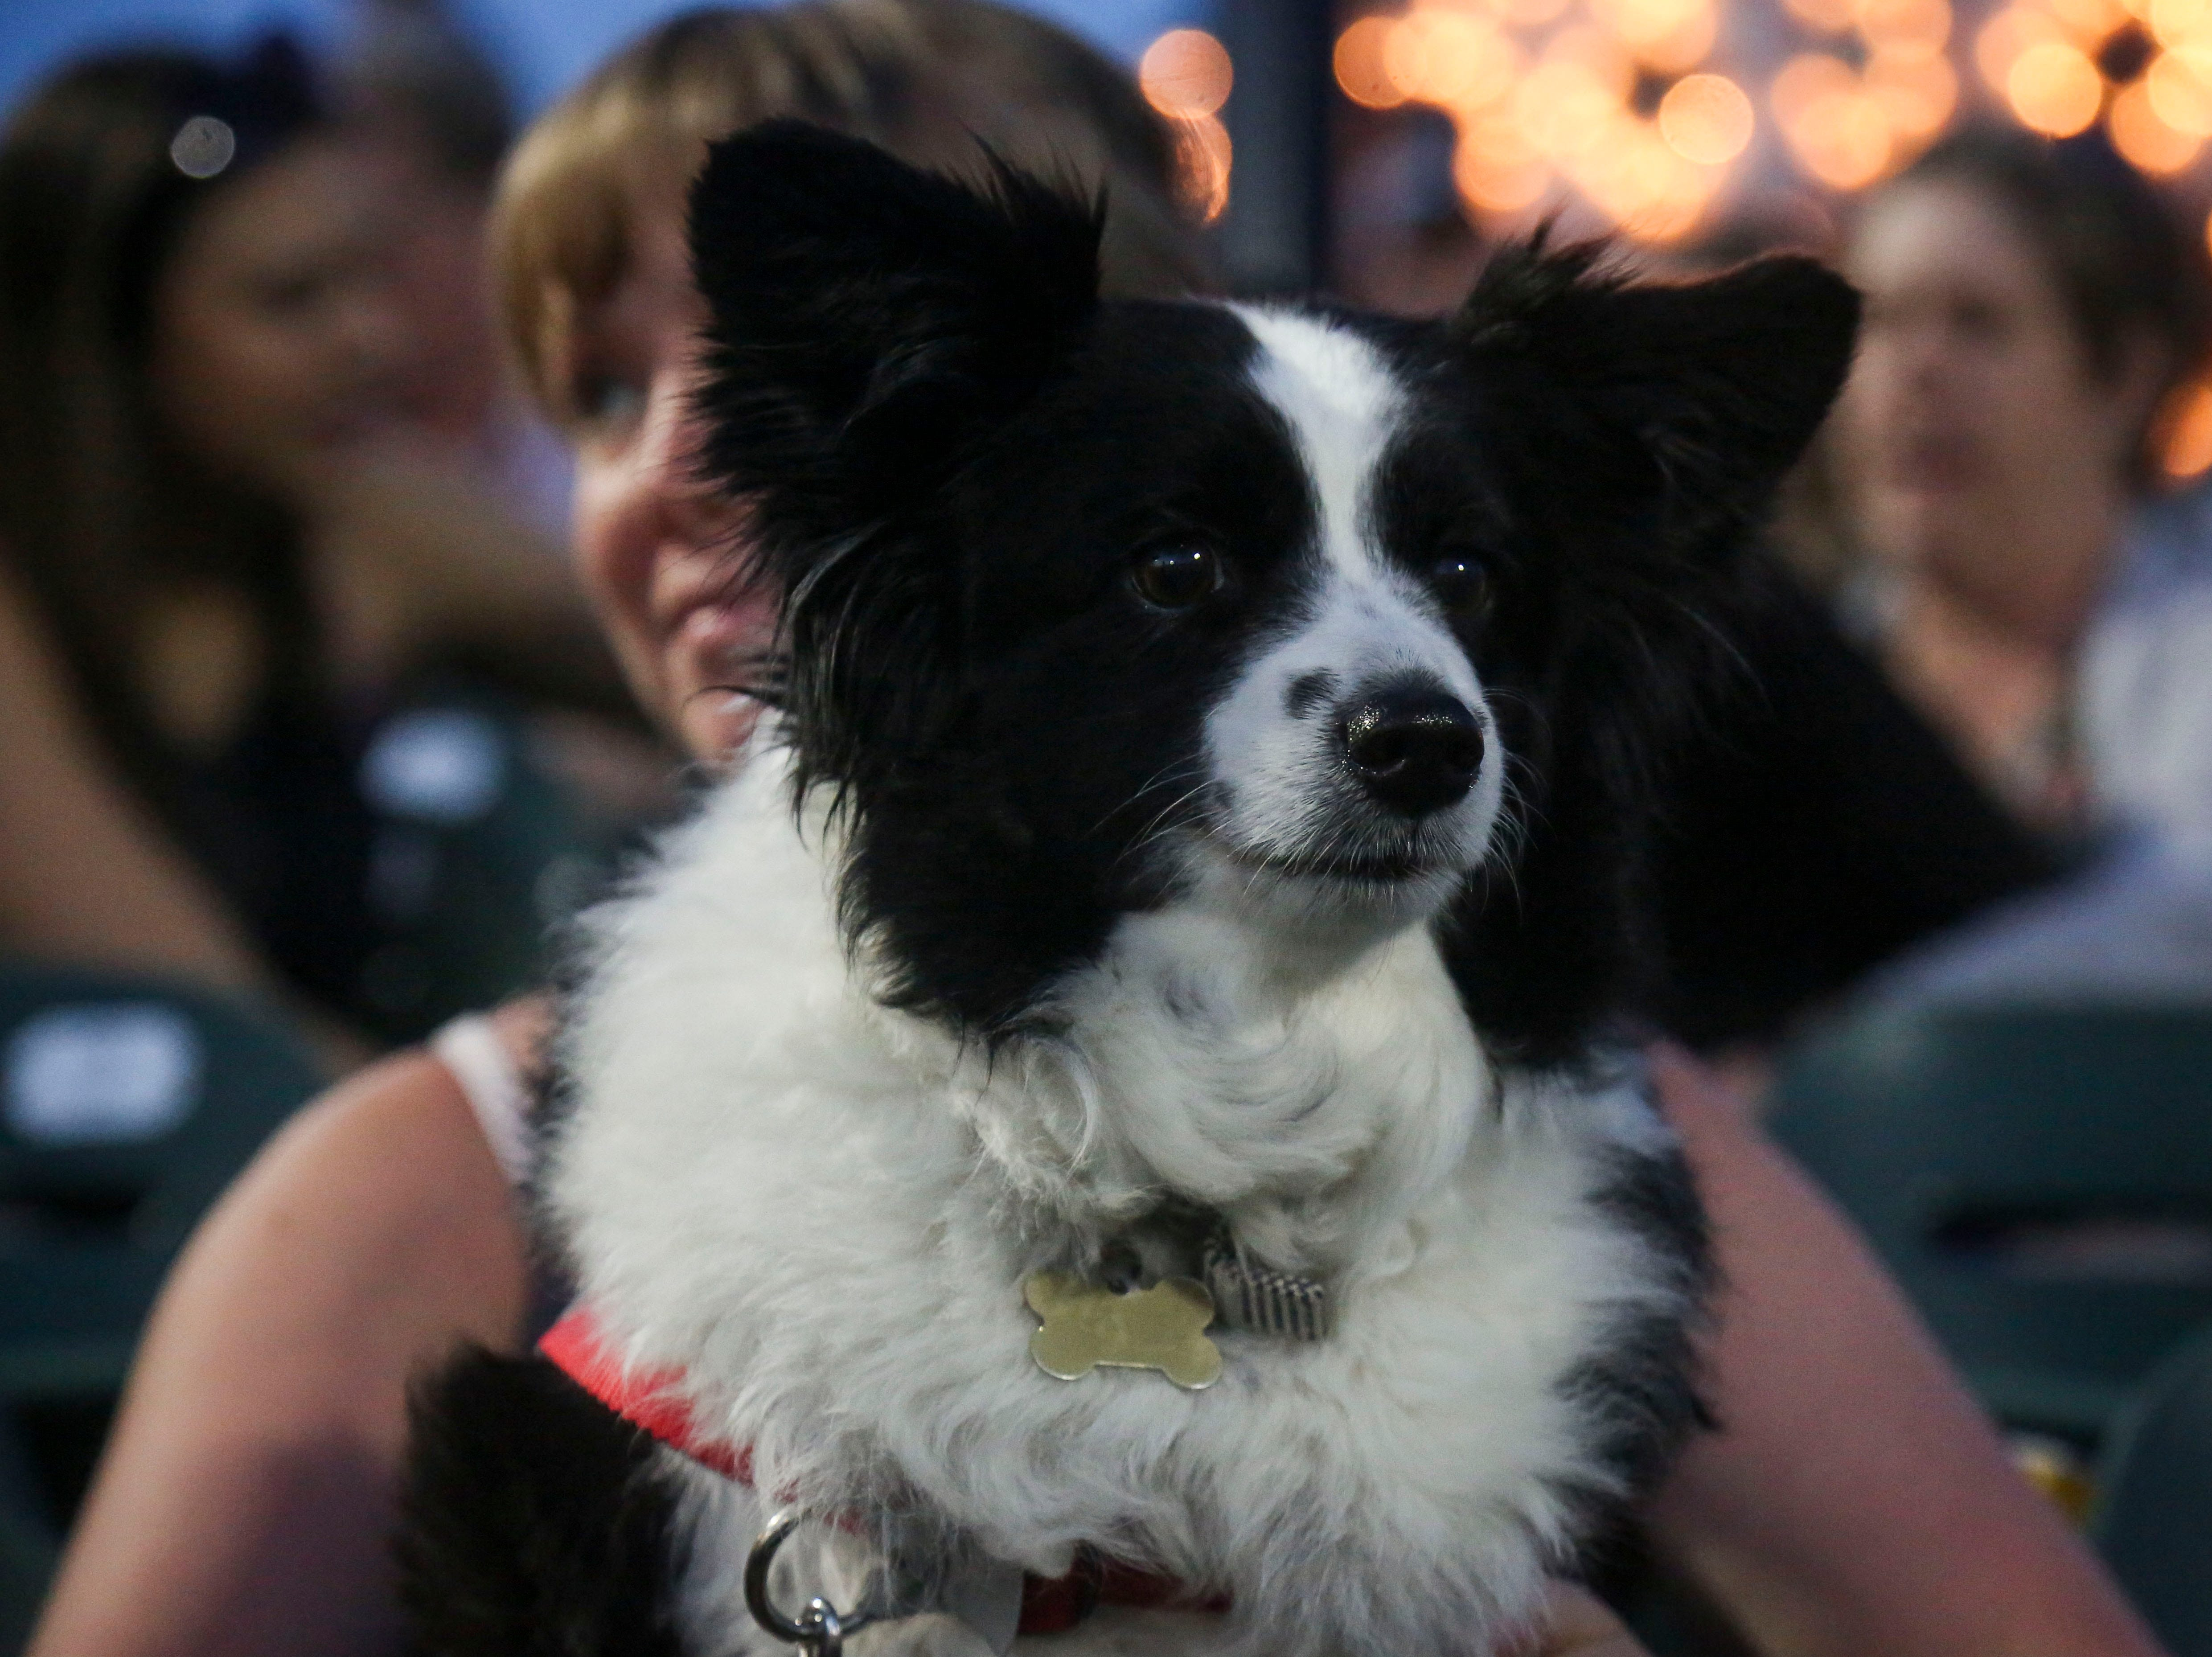 Grace, the Toy Australian Shepard, watches the Louisville Bats v. Syracuse Mets game during Dog Day Nights at Louisville Slugger Field in downtown Louisville, Ky. on Tuesday, May 7, 2019.